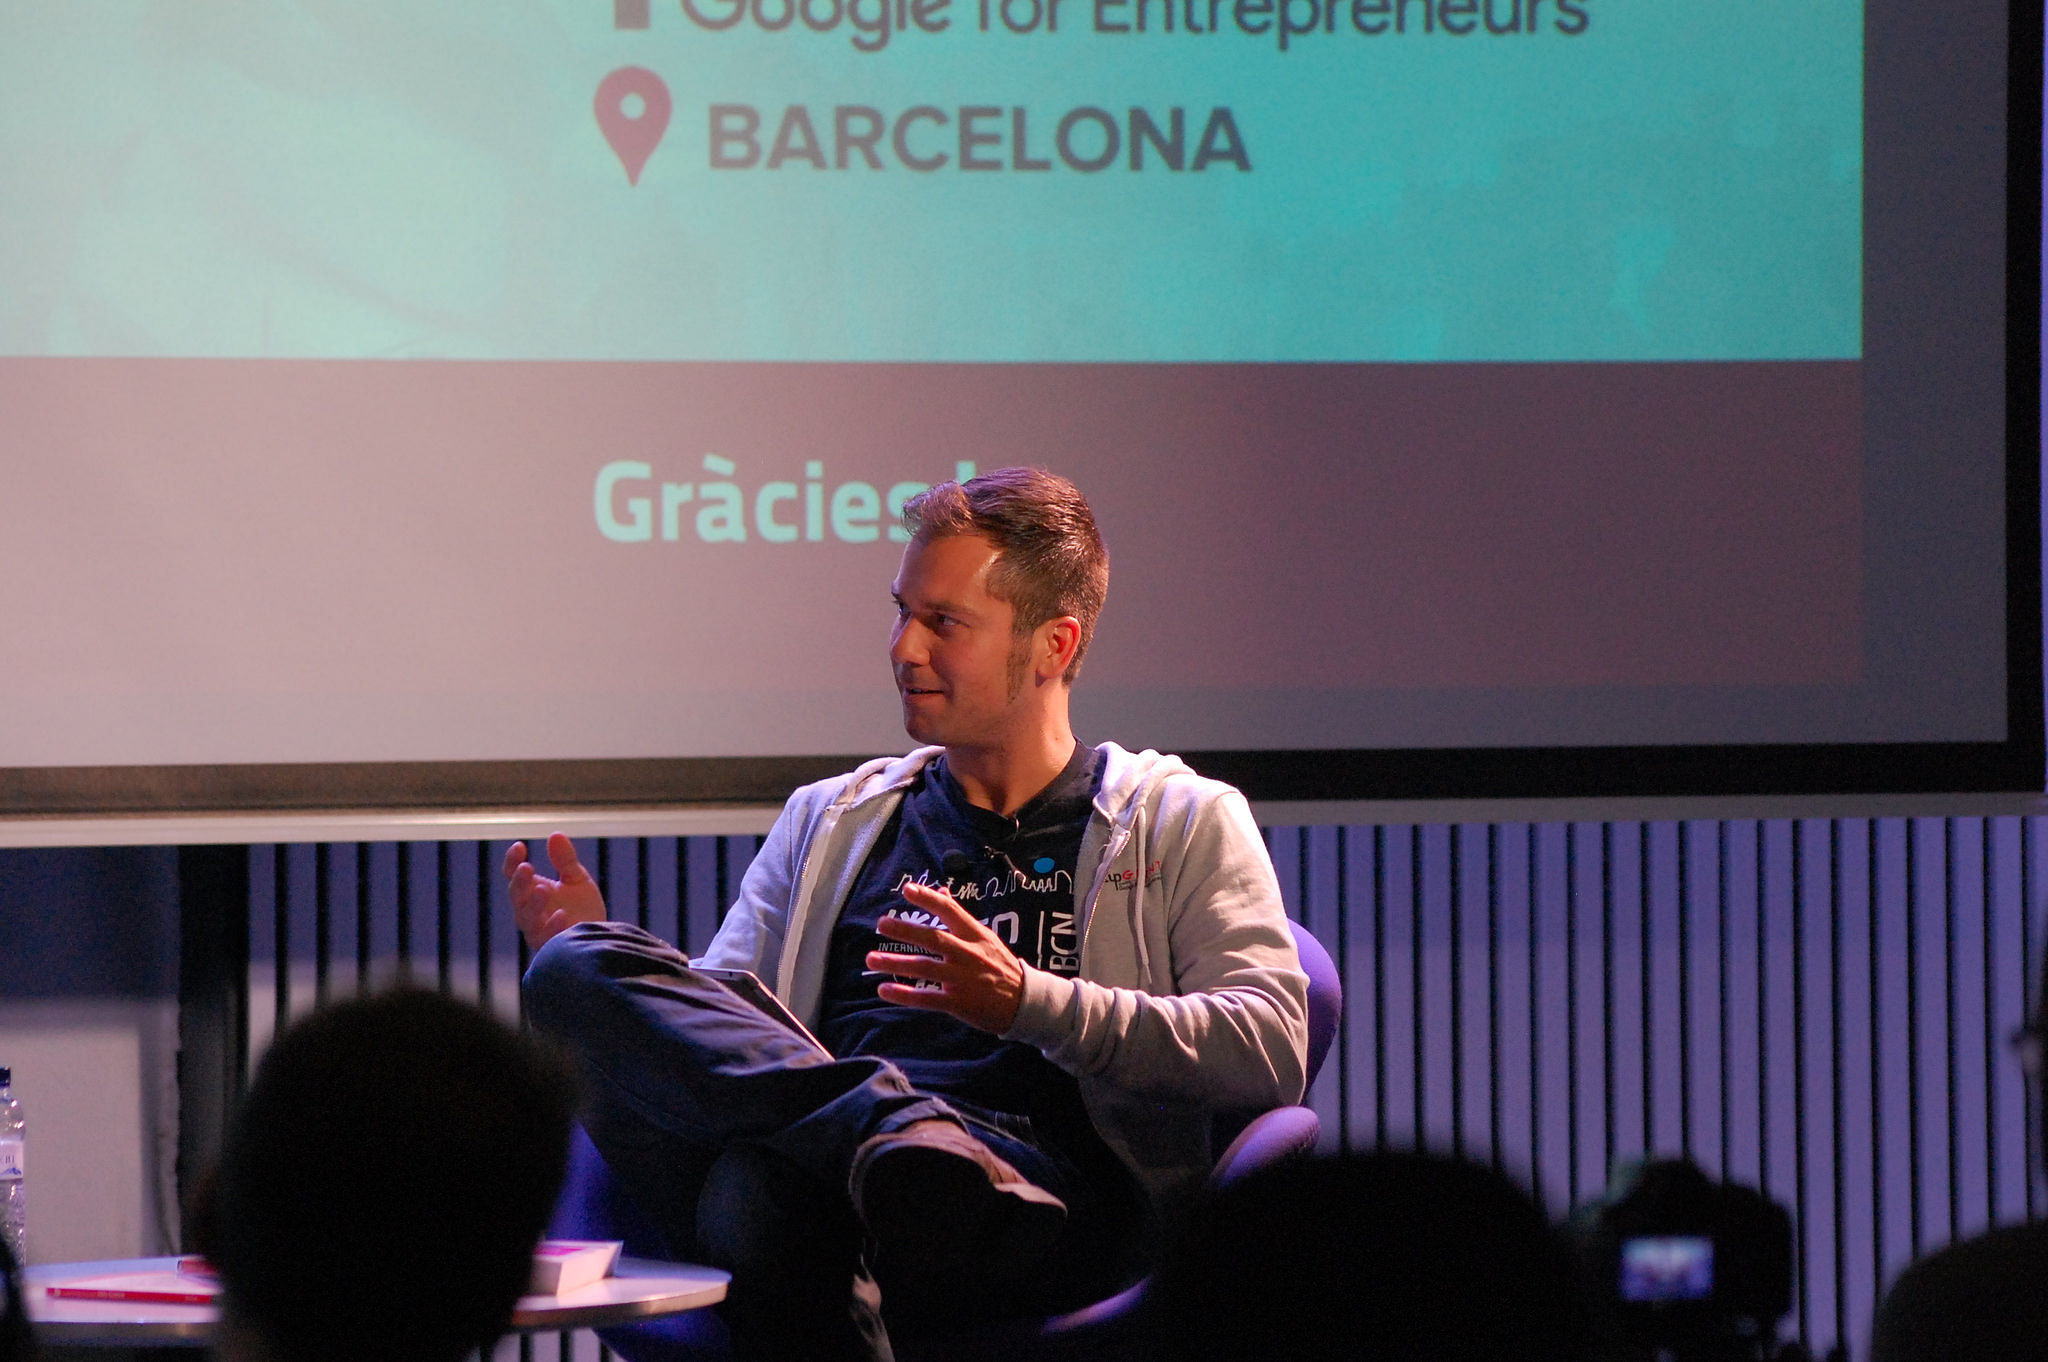 Àlex Rodríguez Bacardit: We Want to Bring Barcelona to the Champions League of Entrepreneurship